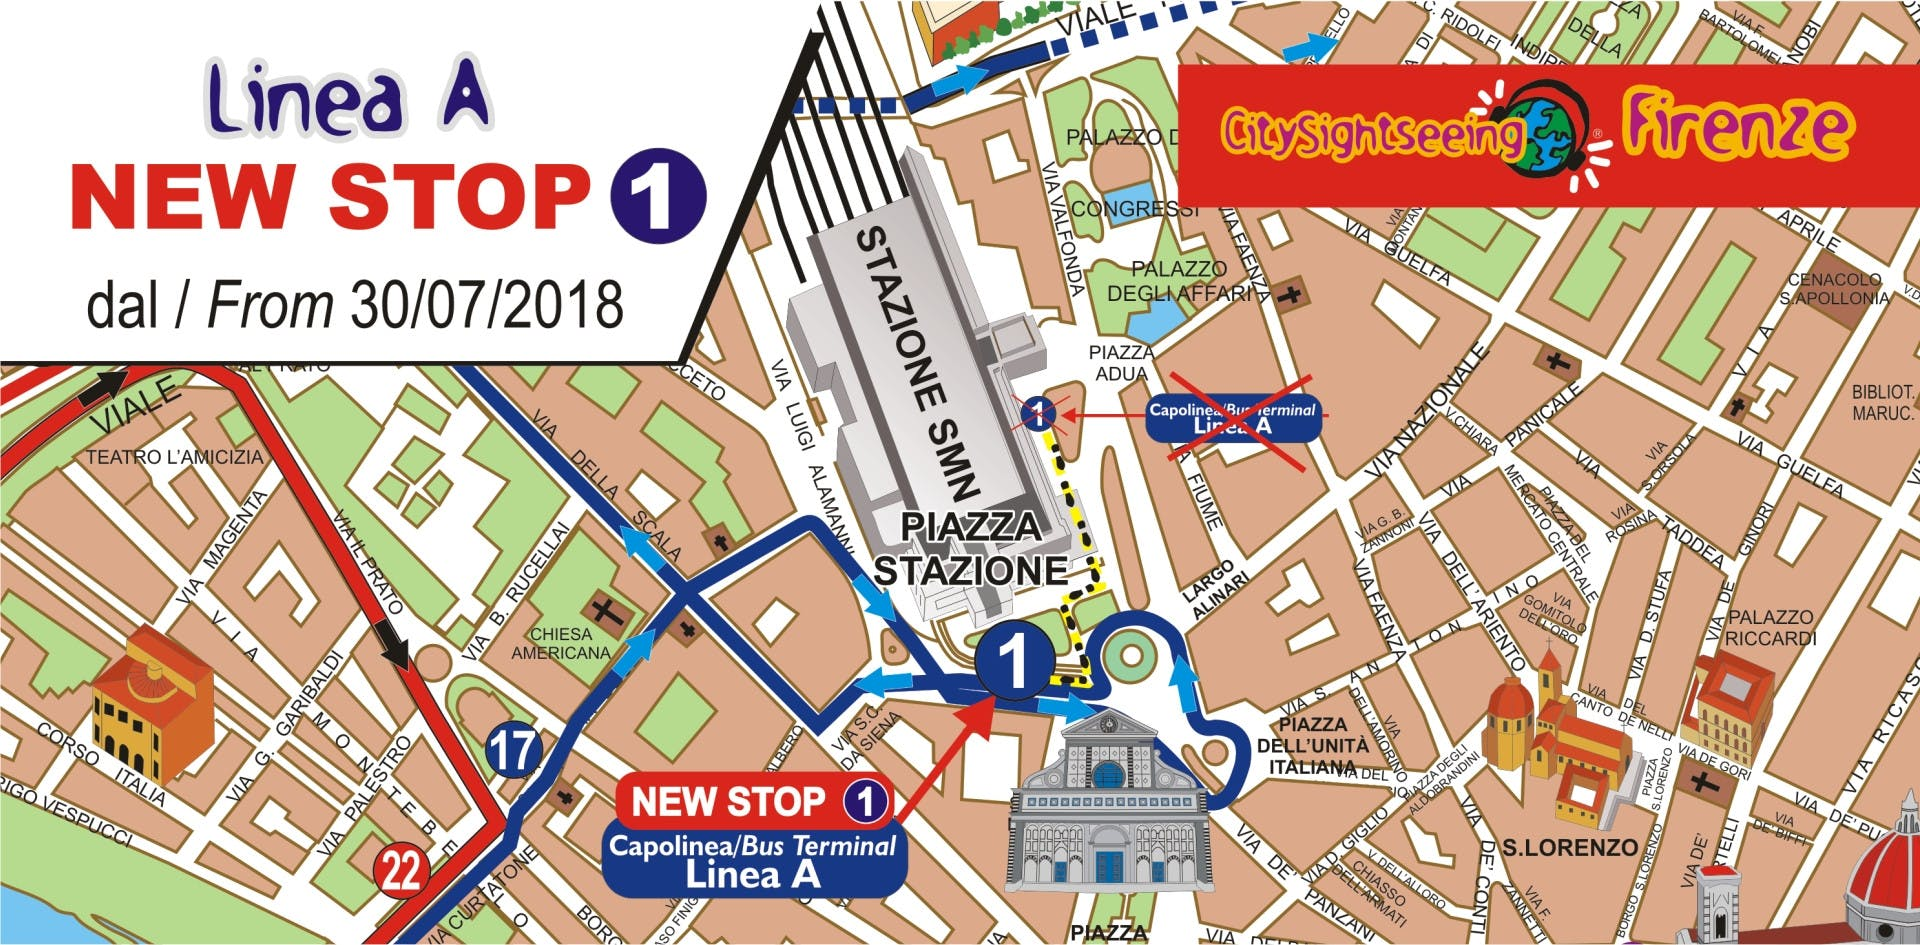 New Stop n.1 Line A valid from 30-07-2018 (1).jpg